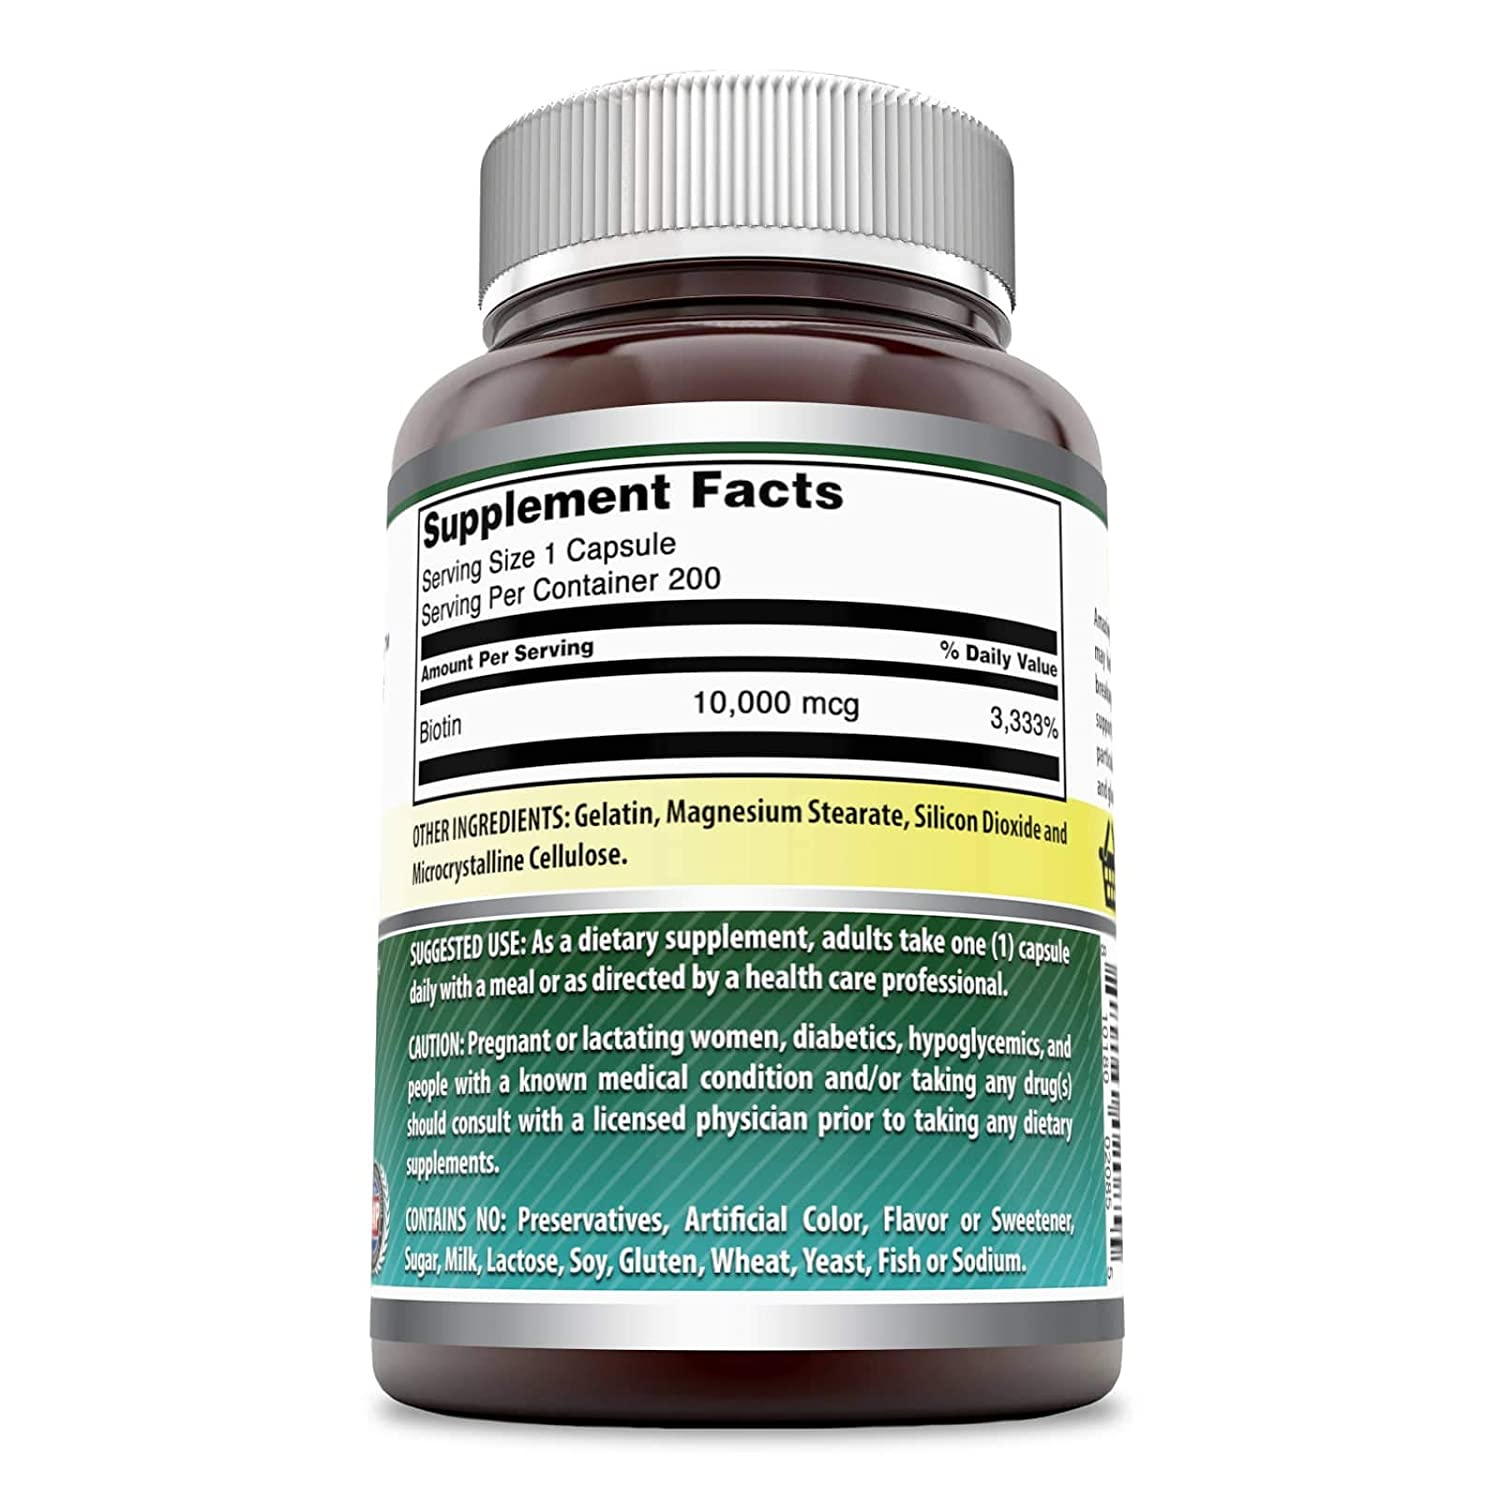 Amazon.com: Amazing Formulas Biotin Supplement - 10,000mcg - 200 Capsules -  Supports Healthy Hair, Skin & Nails - Promotes Cell Rejuvenation: Health ...